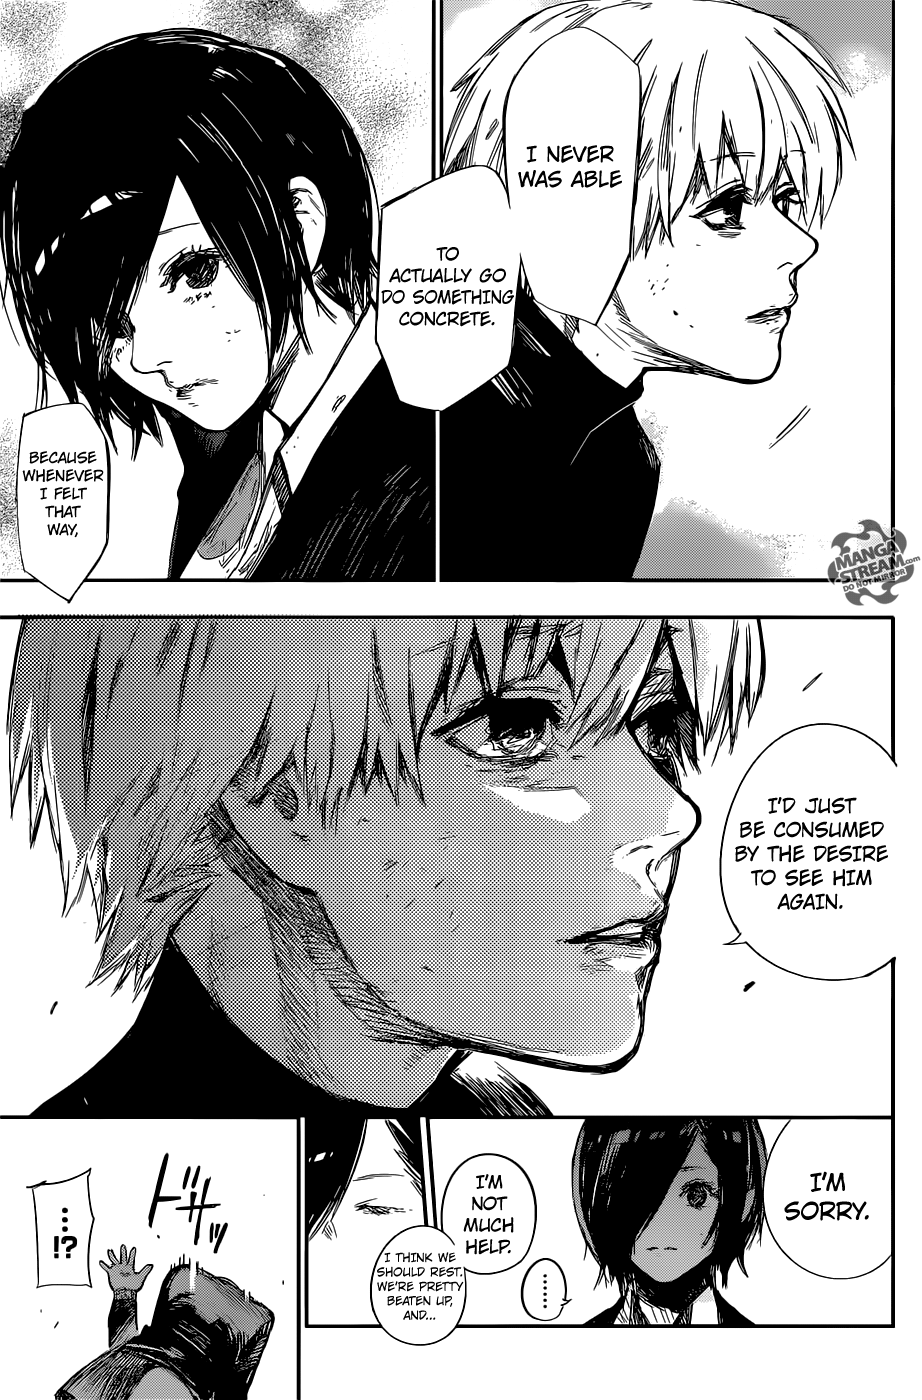 Tokyo Ghoul:re 124 - Touka + Kaneki is now officially canon